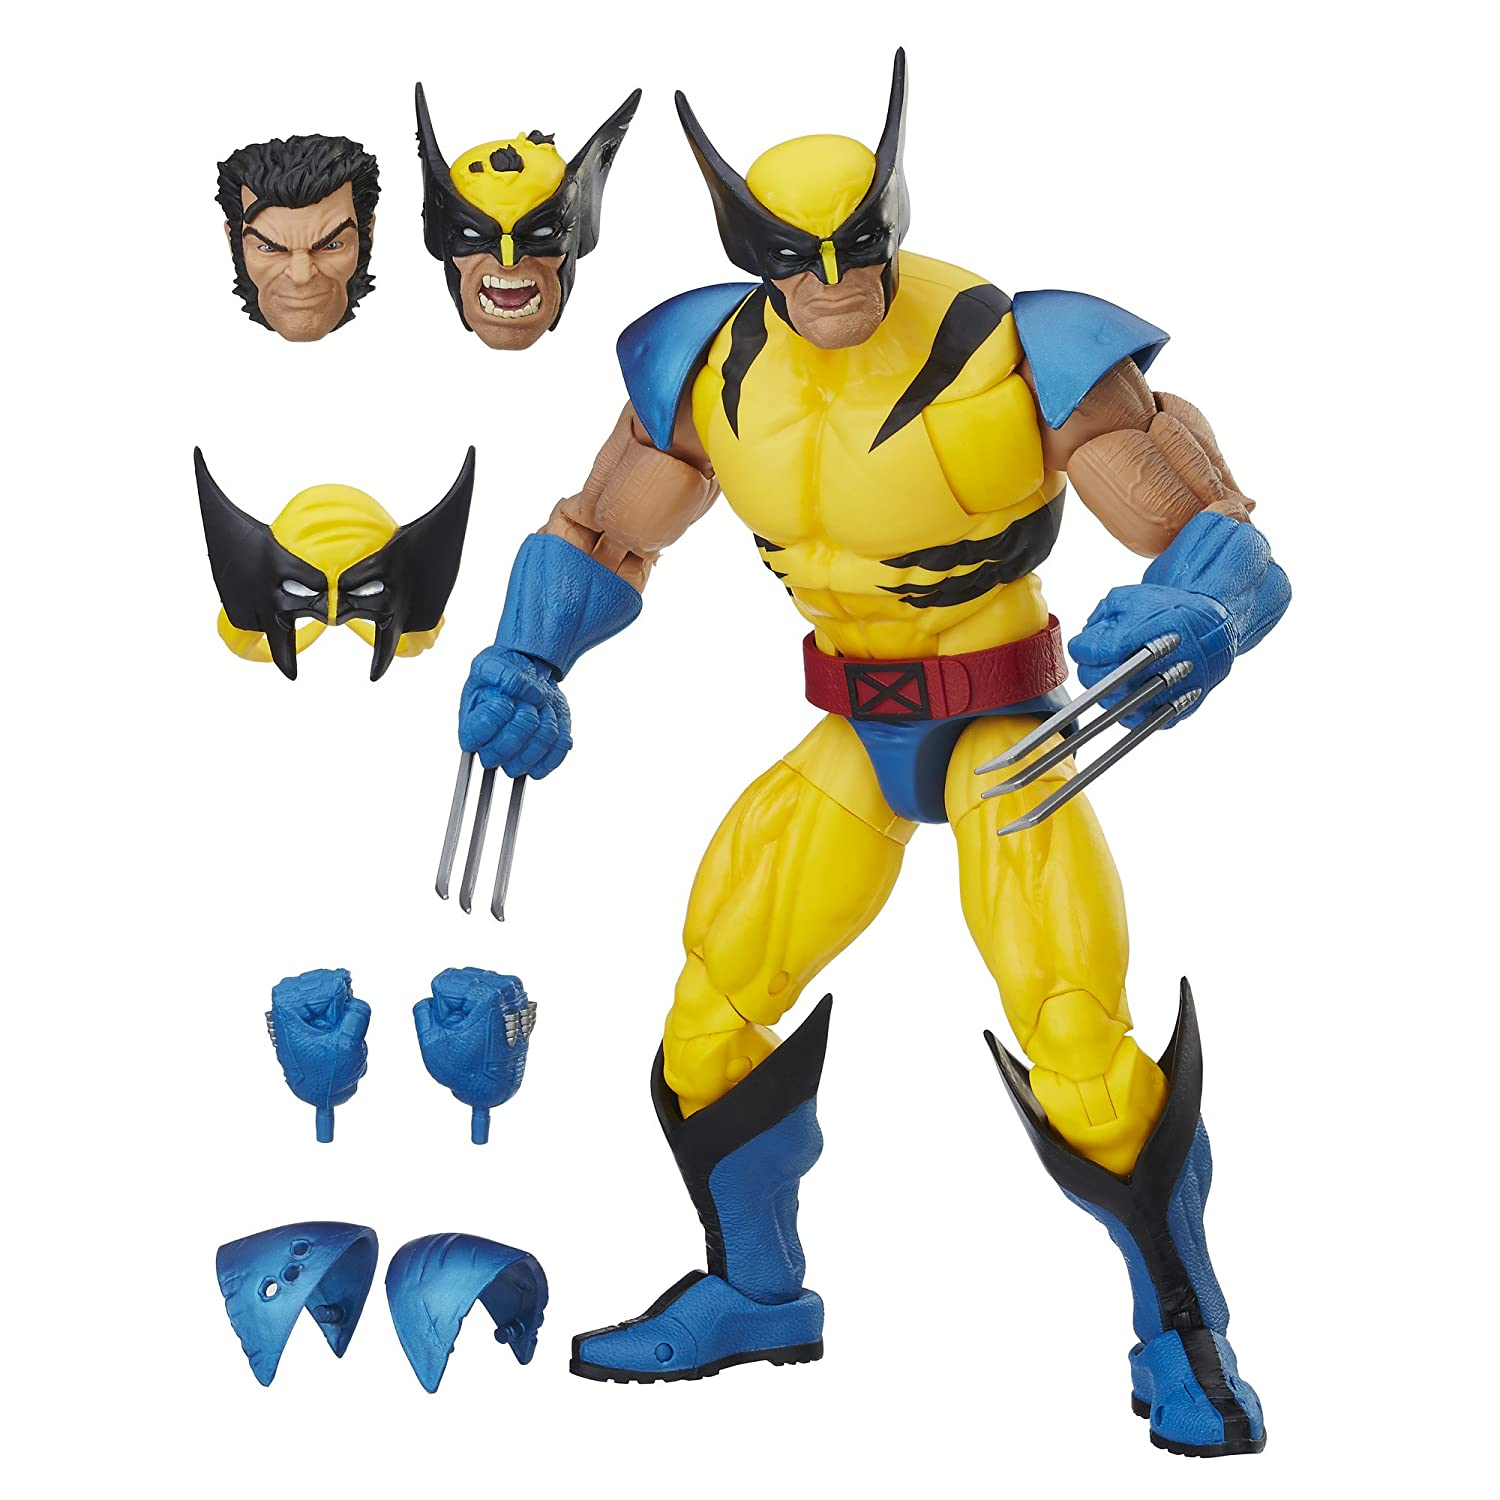 Marvel Legends Wolverine 12 Inch Action Figure Hasbro E0493